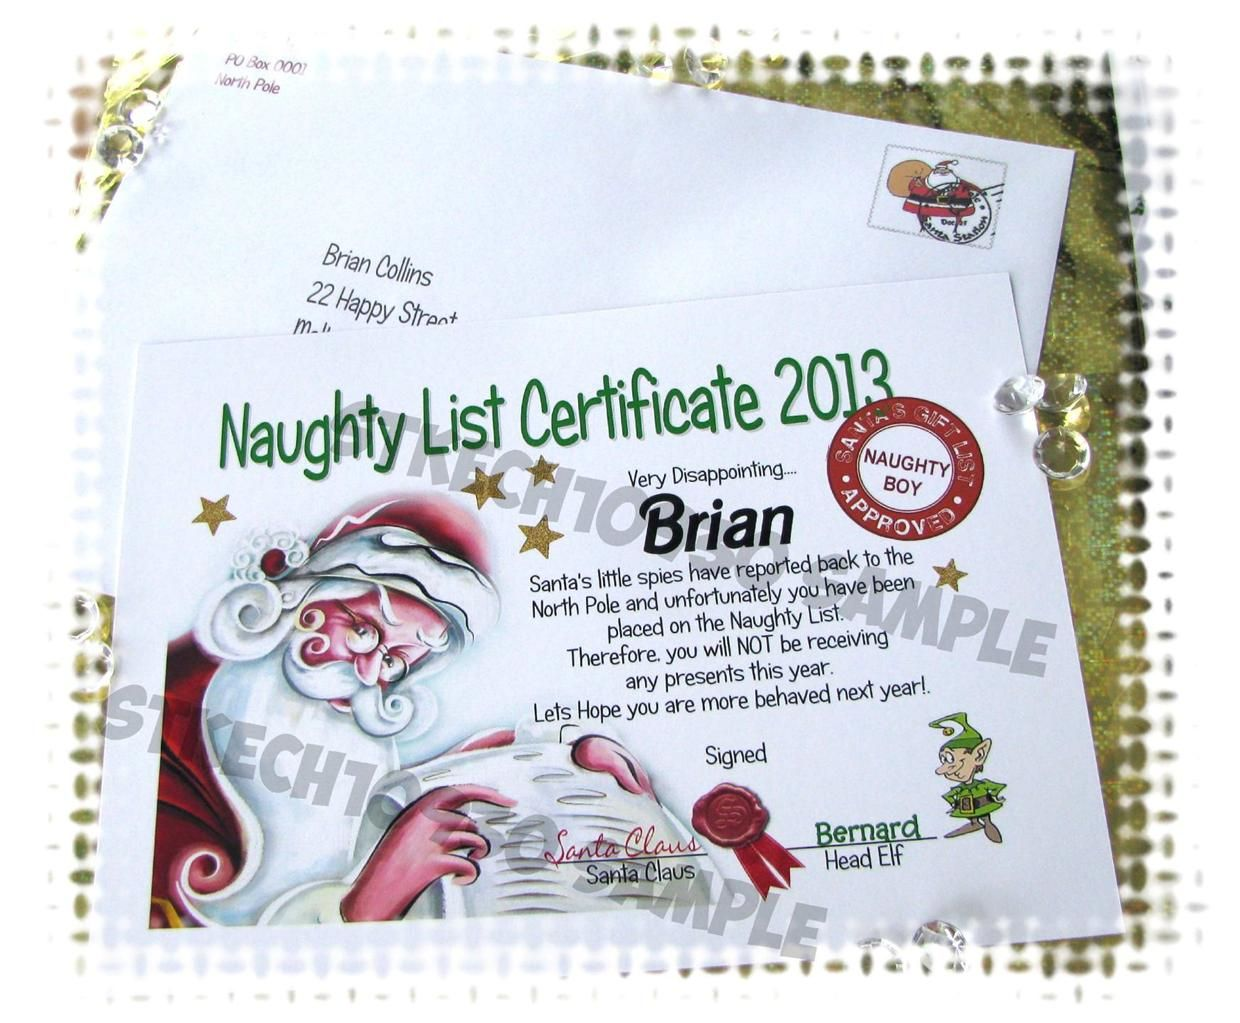 Santa naughty list certificates naughty nice certificate personalised gifts christmas party special occasion supplies ebay letter from santasanta spiritdancerdesigns Images